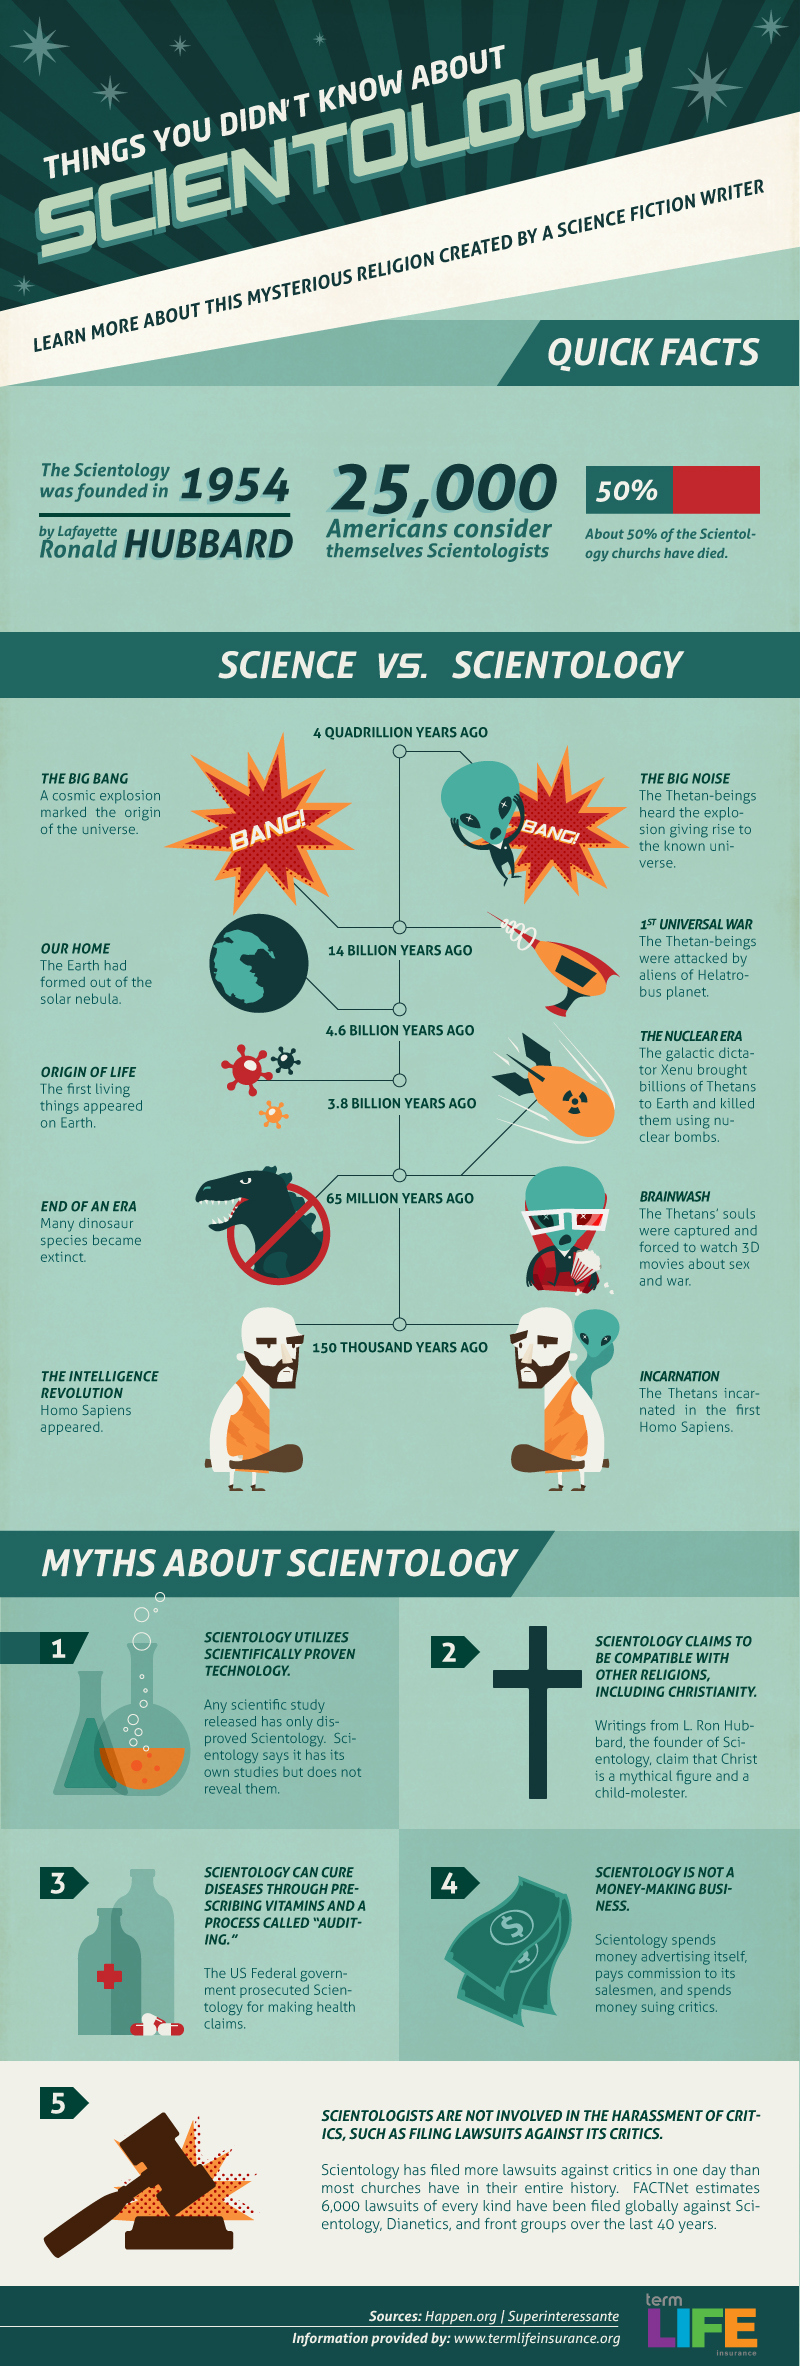 What You Didnt Know About Scientology